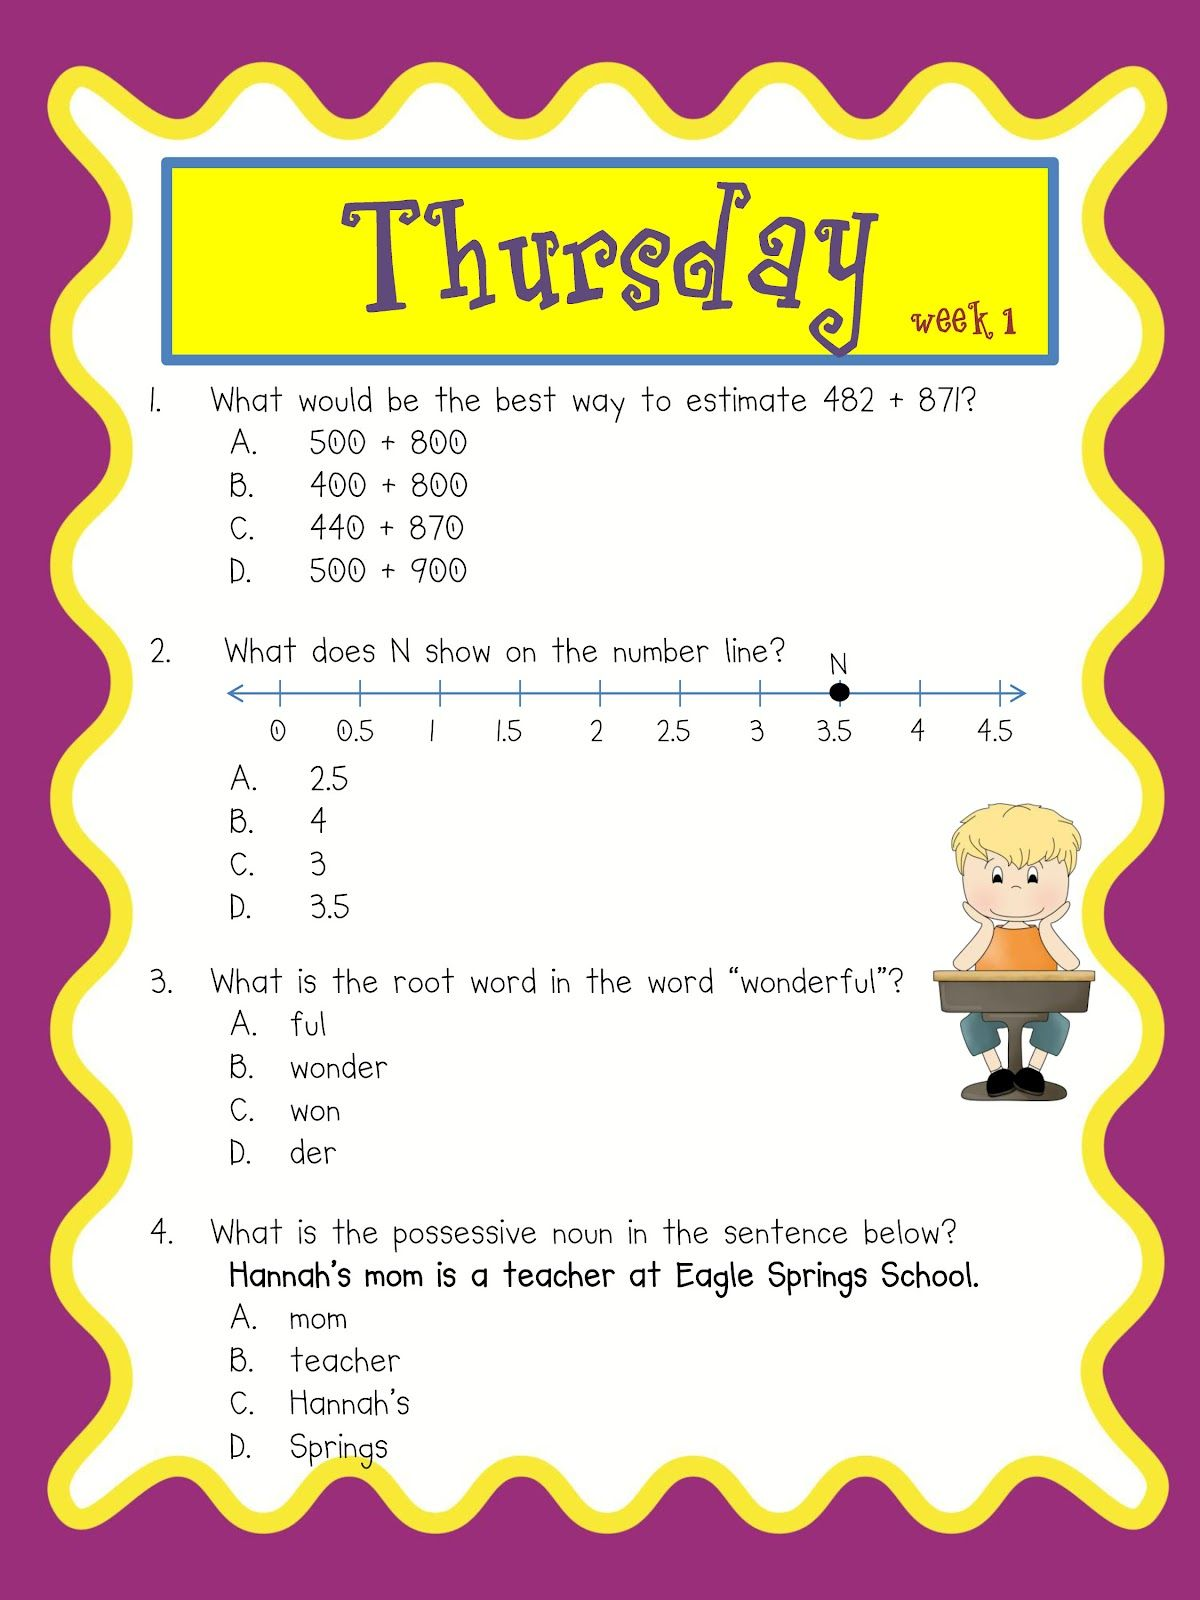 Testing Review Daily Math And Grammar